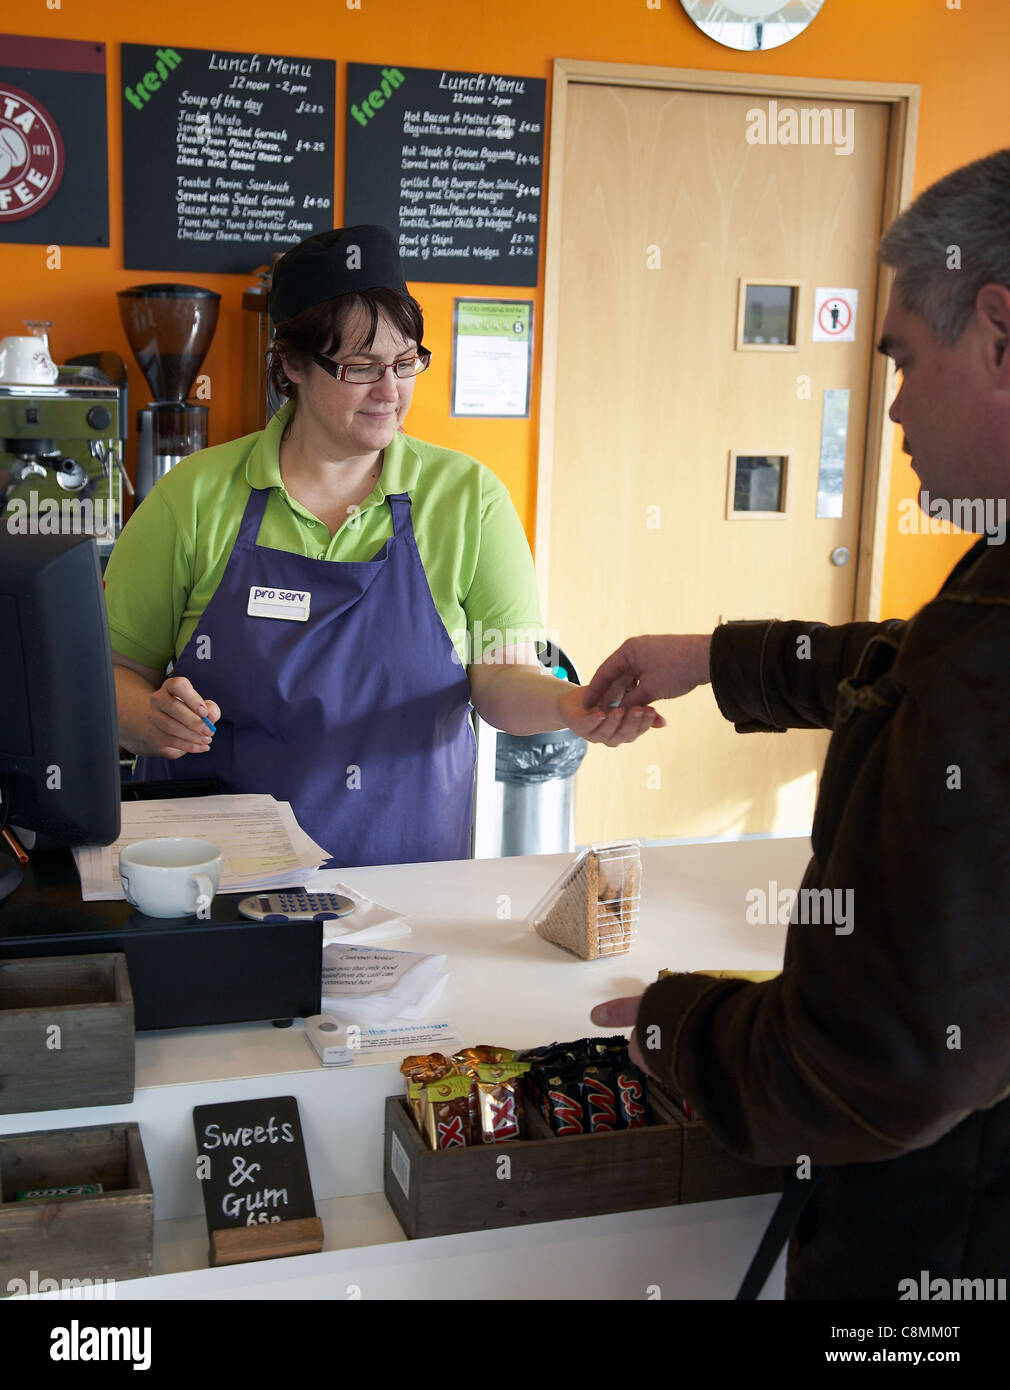 Man purchasing a sandwich at a coffee shop. - Stock Image